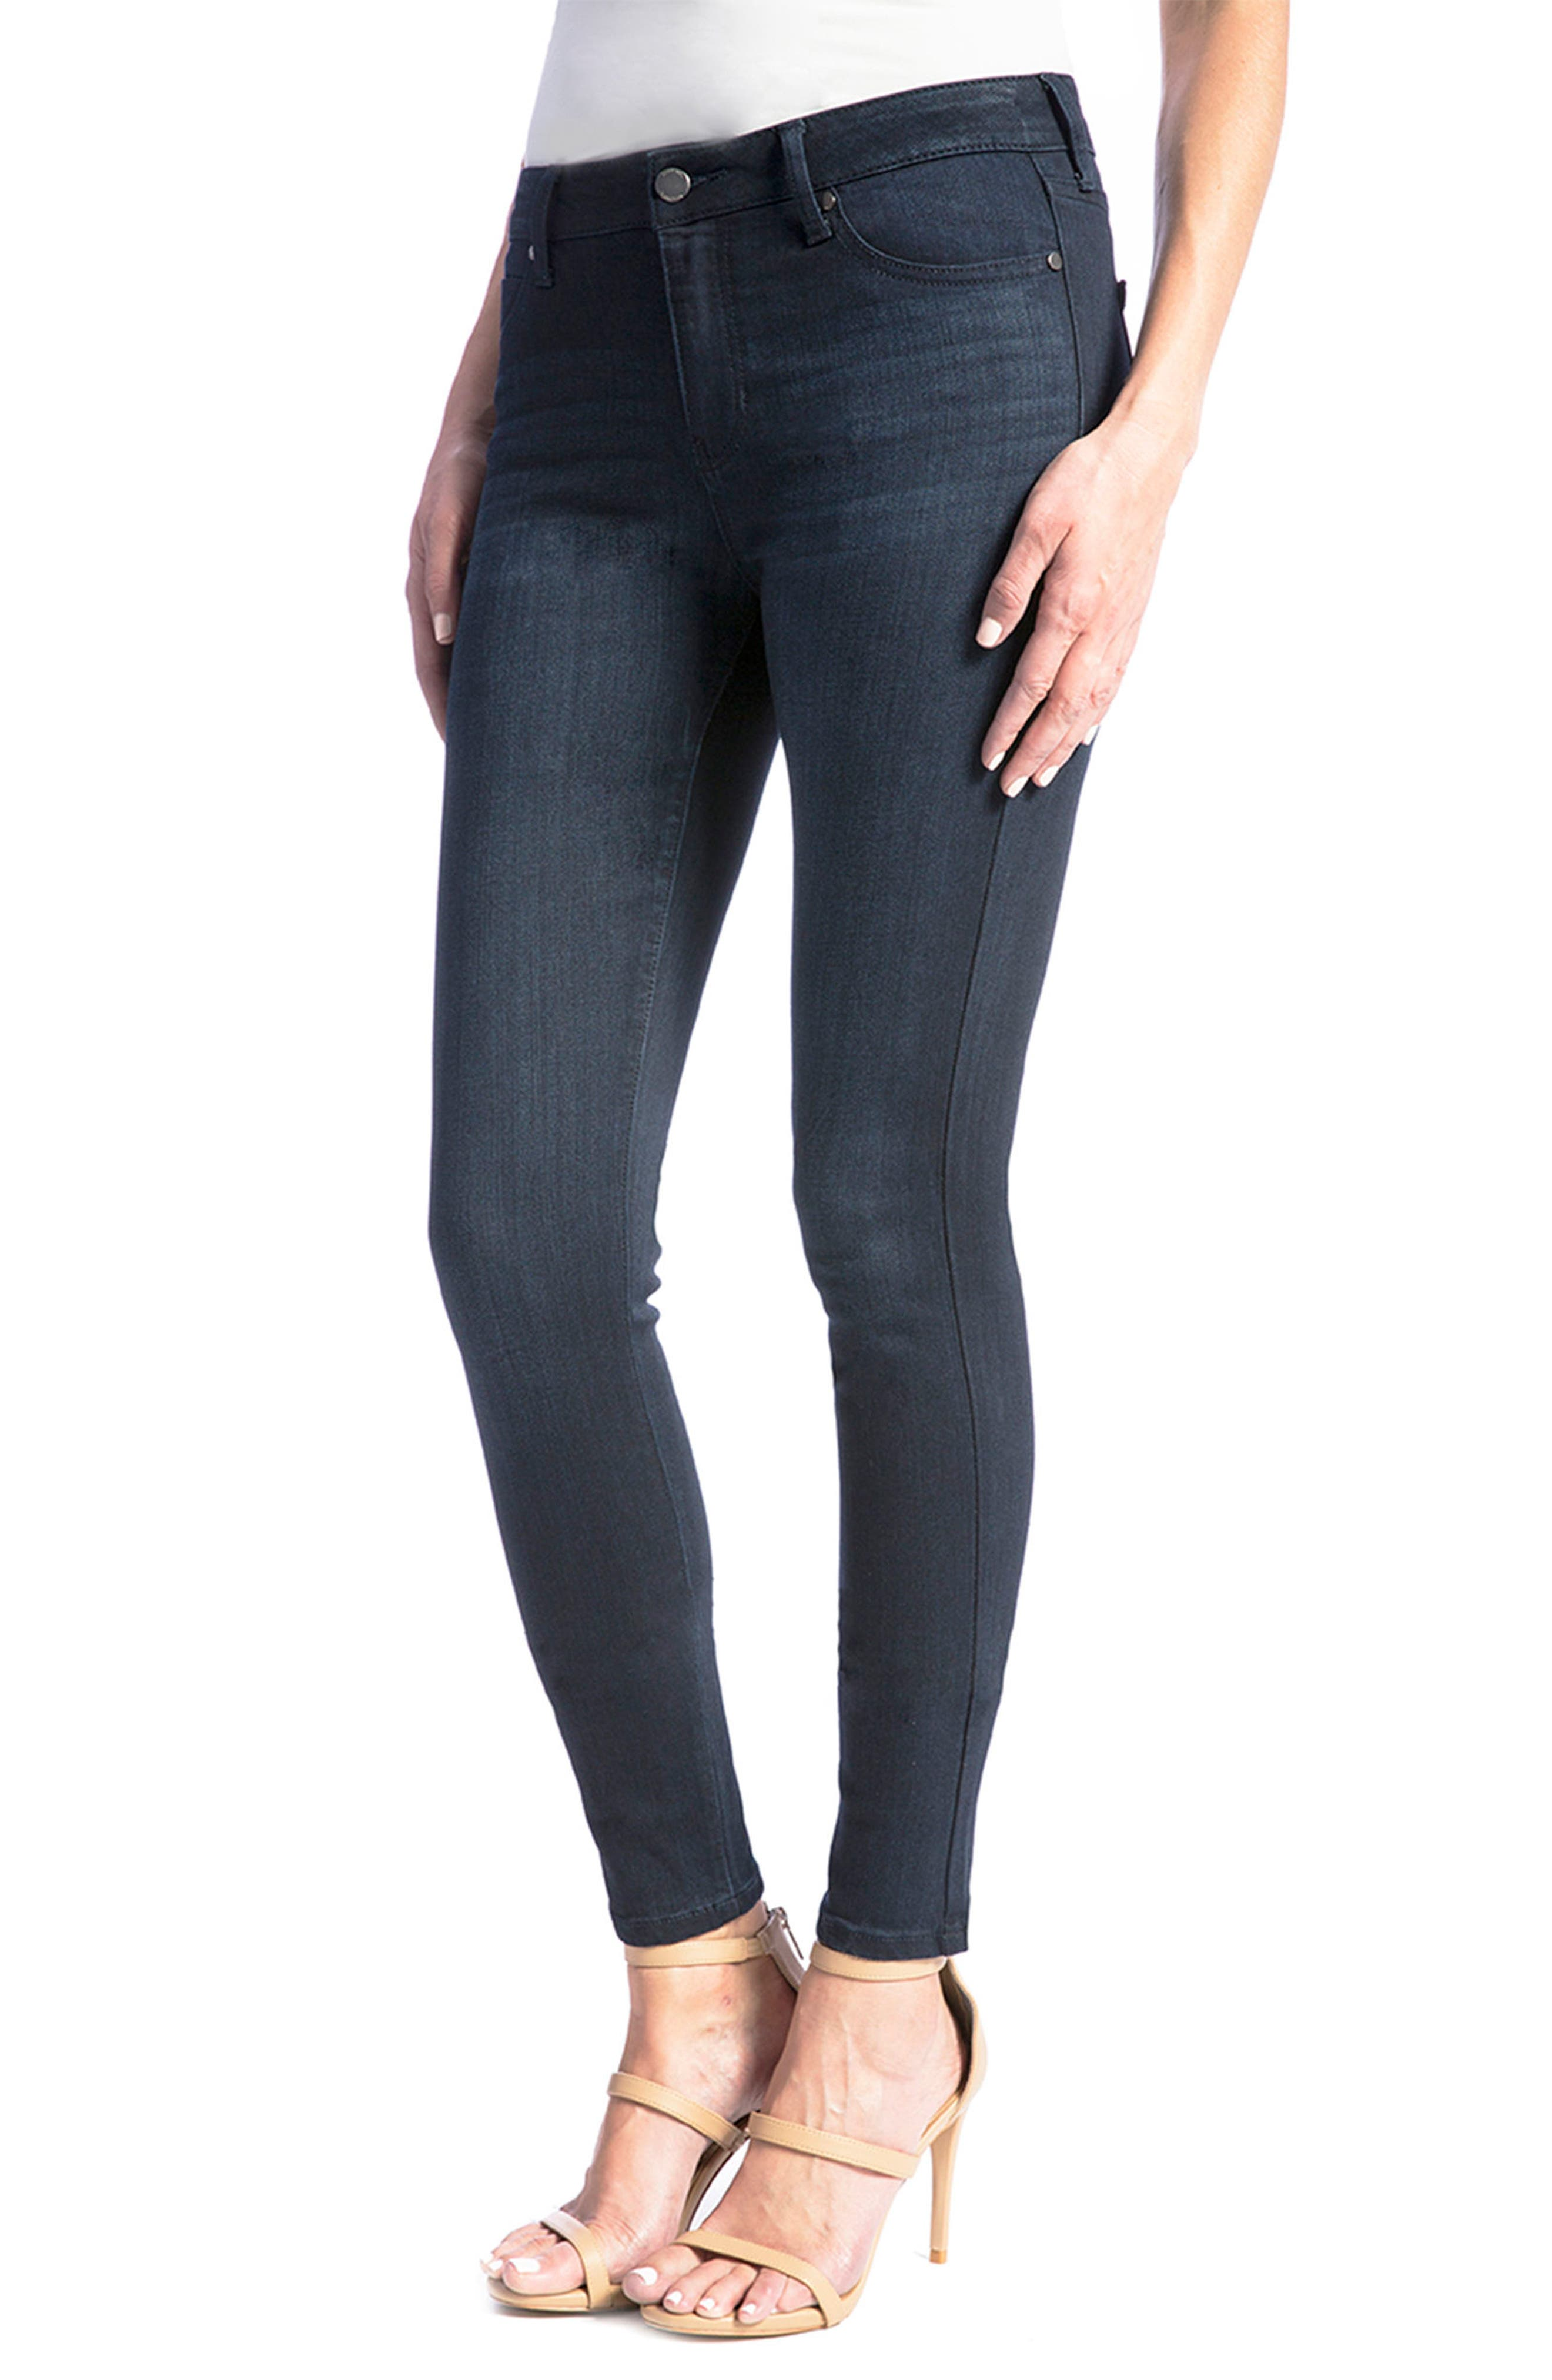 Jeans Co. Abby Stretch Skinny Jeans,                             Alternate thumbnail 4, color,                             Stone Wash